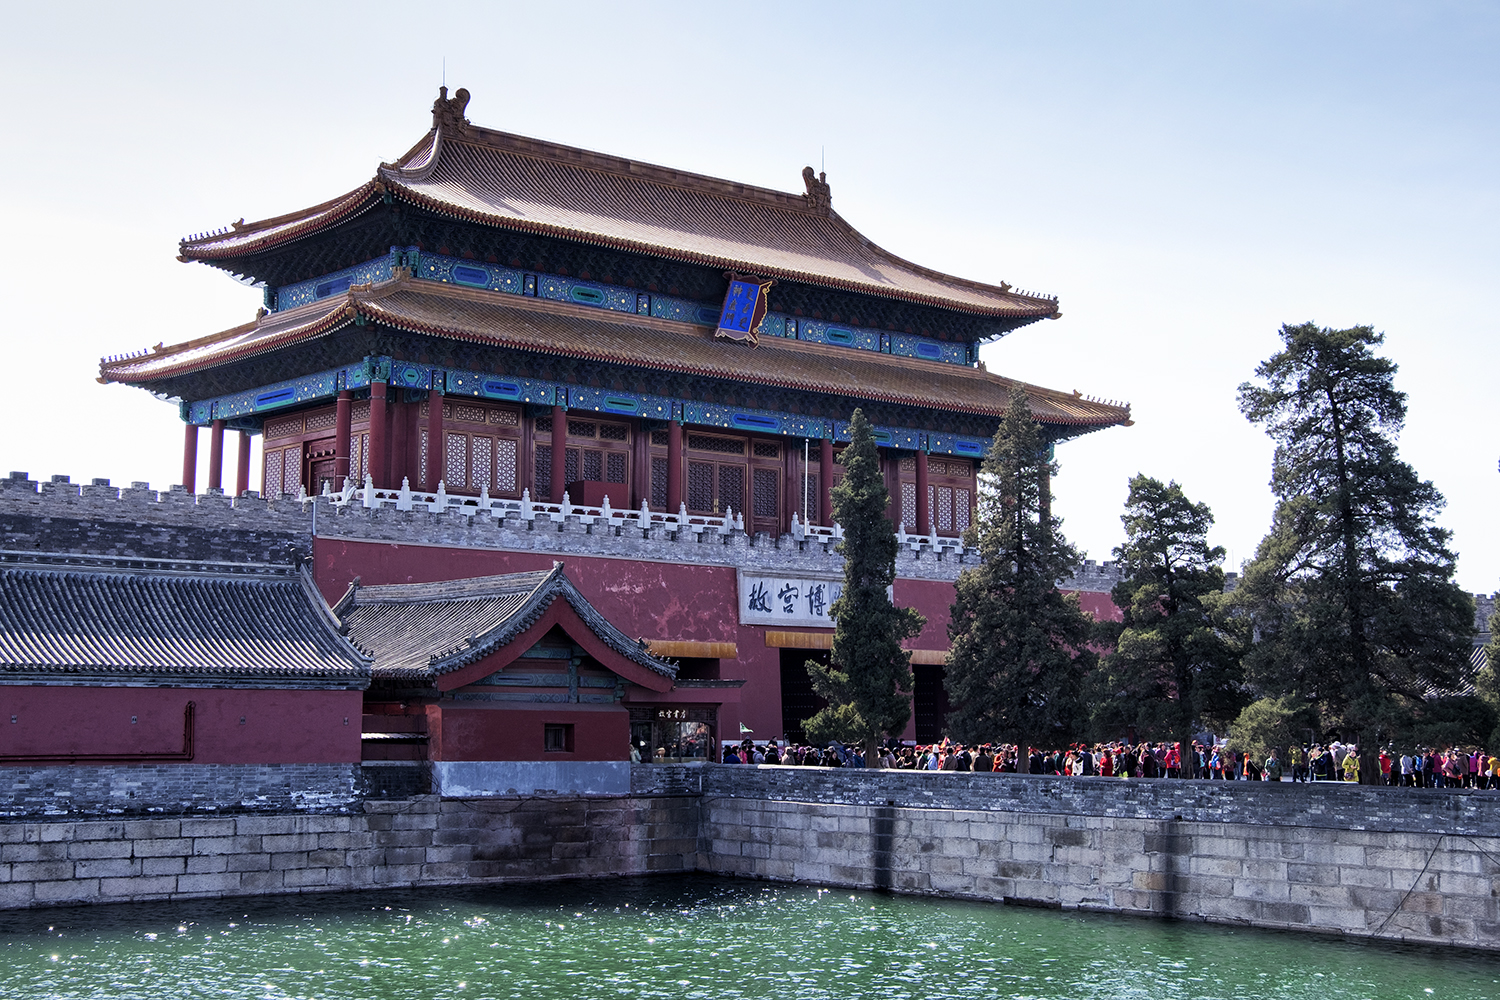 The North Gate to the Forbidden City